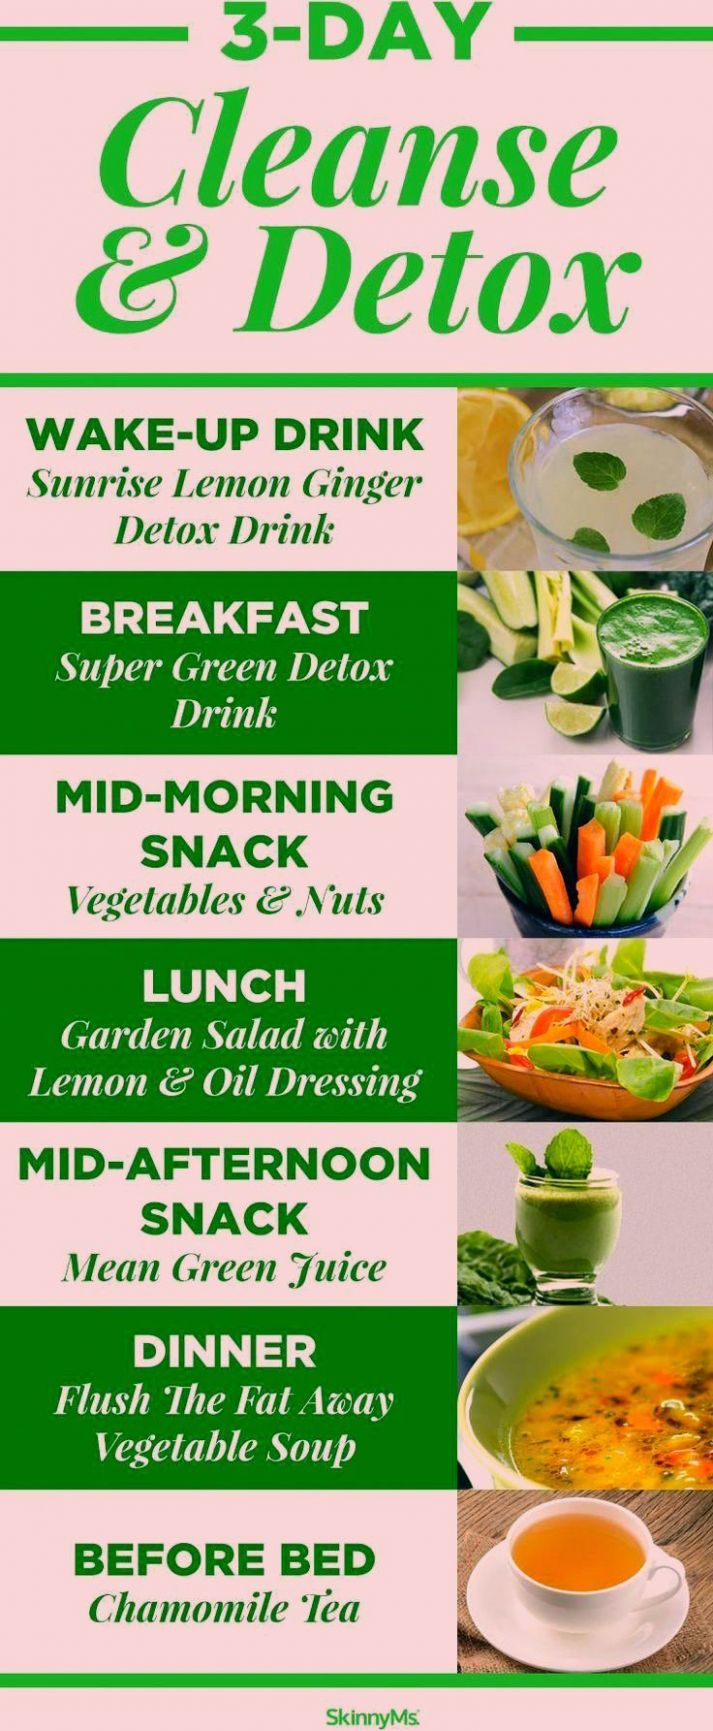 Pin on Recipe - Juicing Recipes For Weight Loss Breakfast Lunch And Dinner